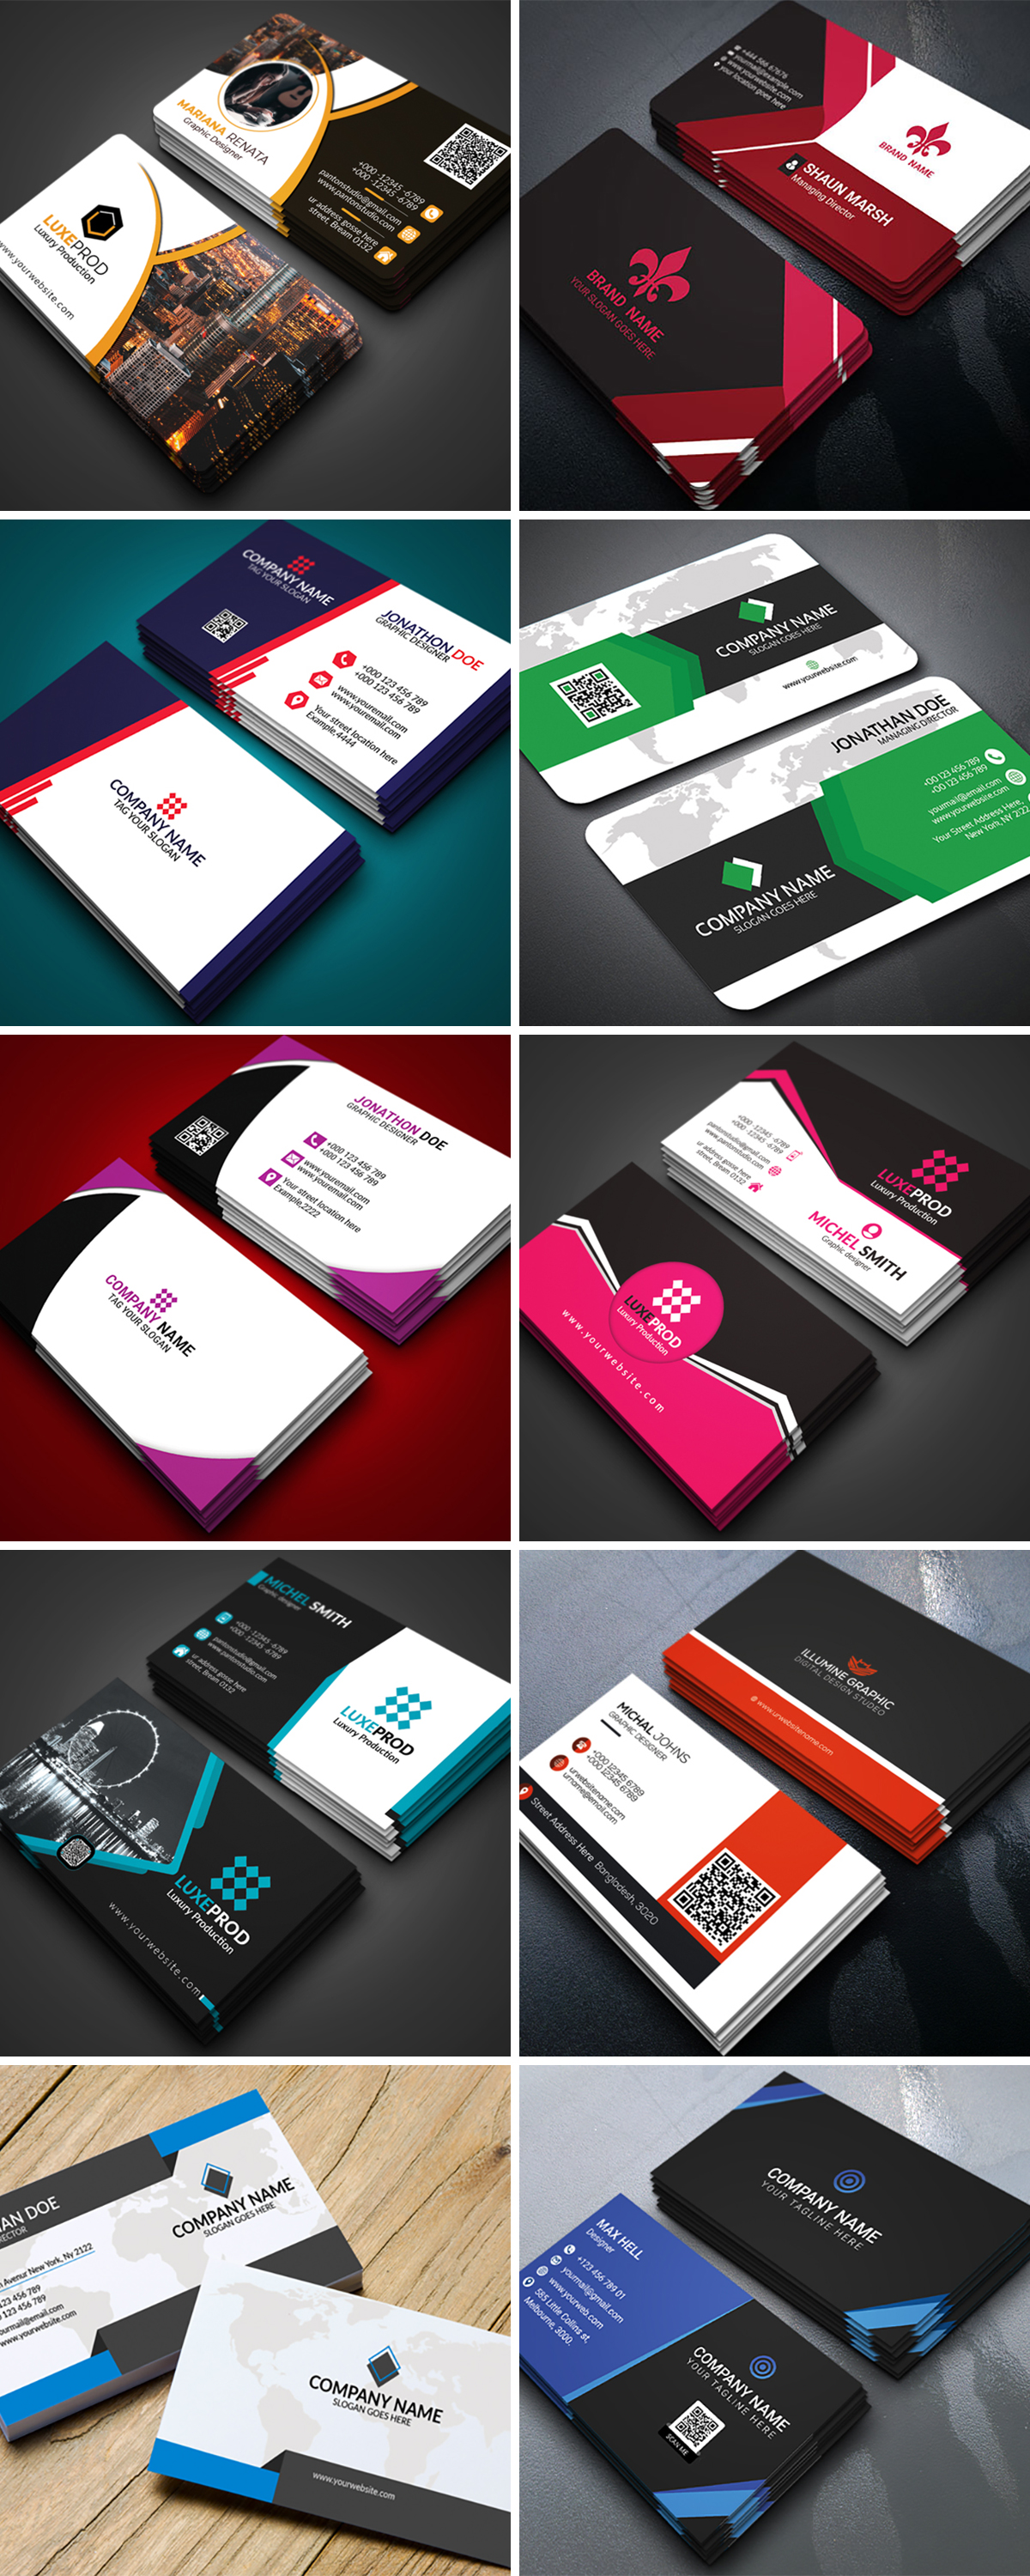 Royal Print Templates Bundle with 160 Items - Only $19 - business cards 4